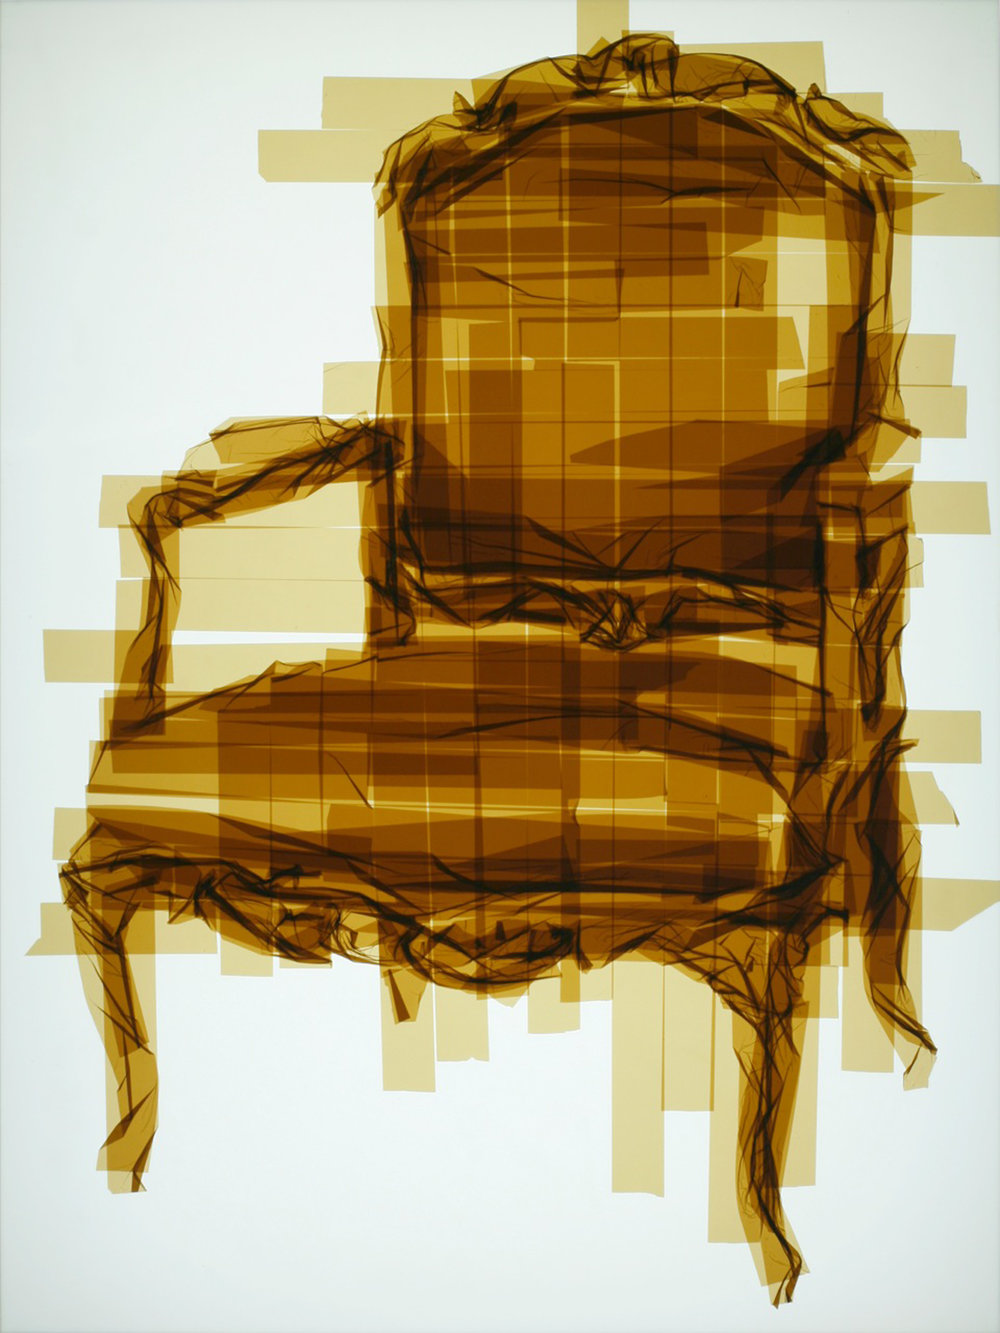 Chair 14, 49 x 37 x 4.5 inches / 124.5 x 94 x 11.5 cm, translucent packaging tape on acrylic panels with LED light box, 2015